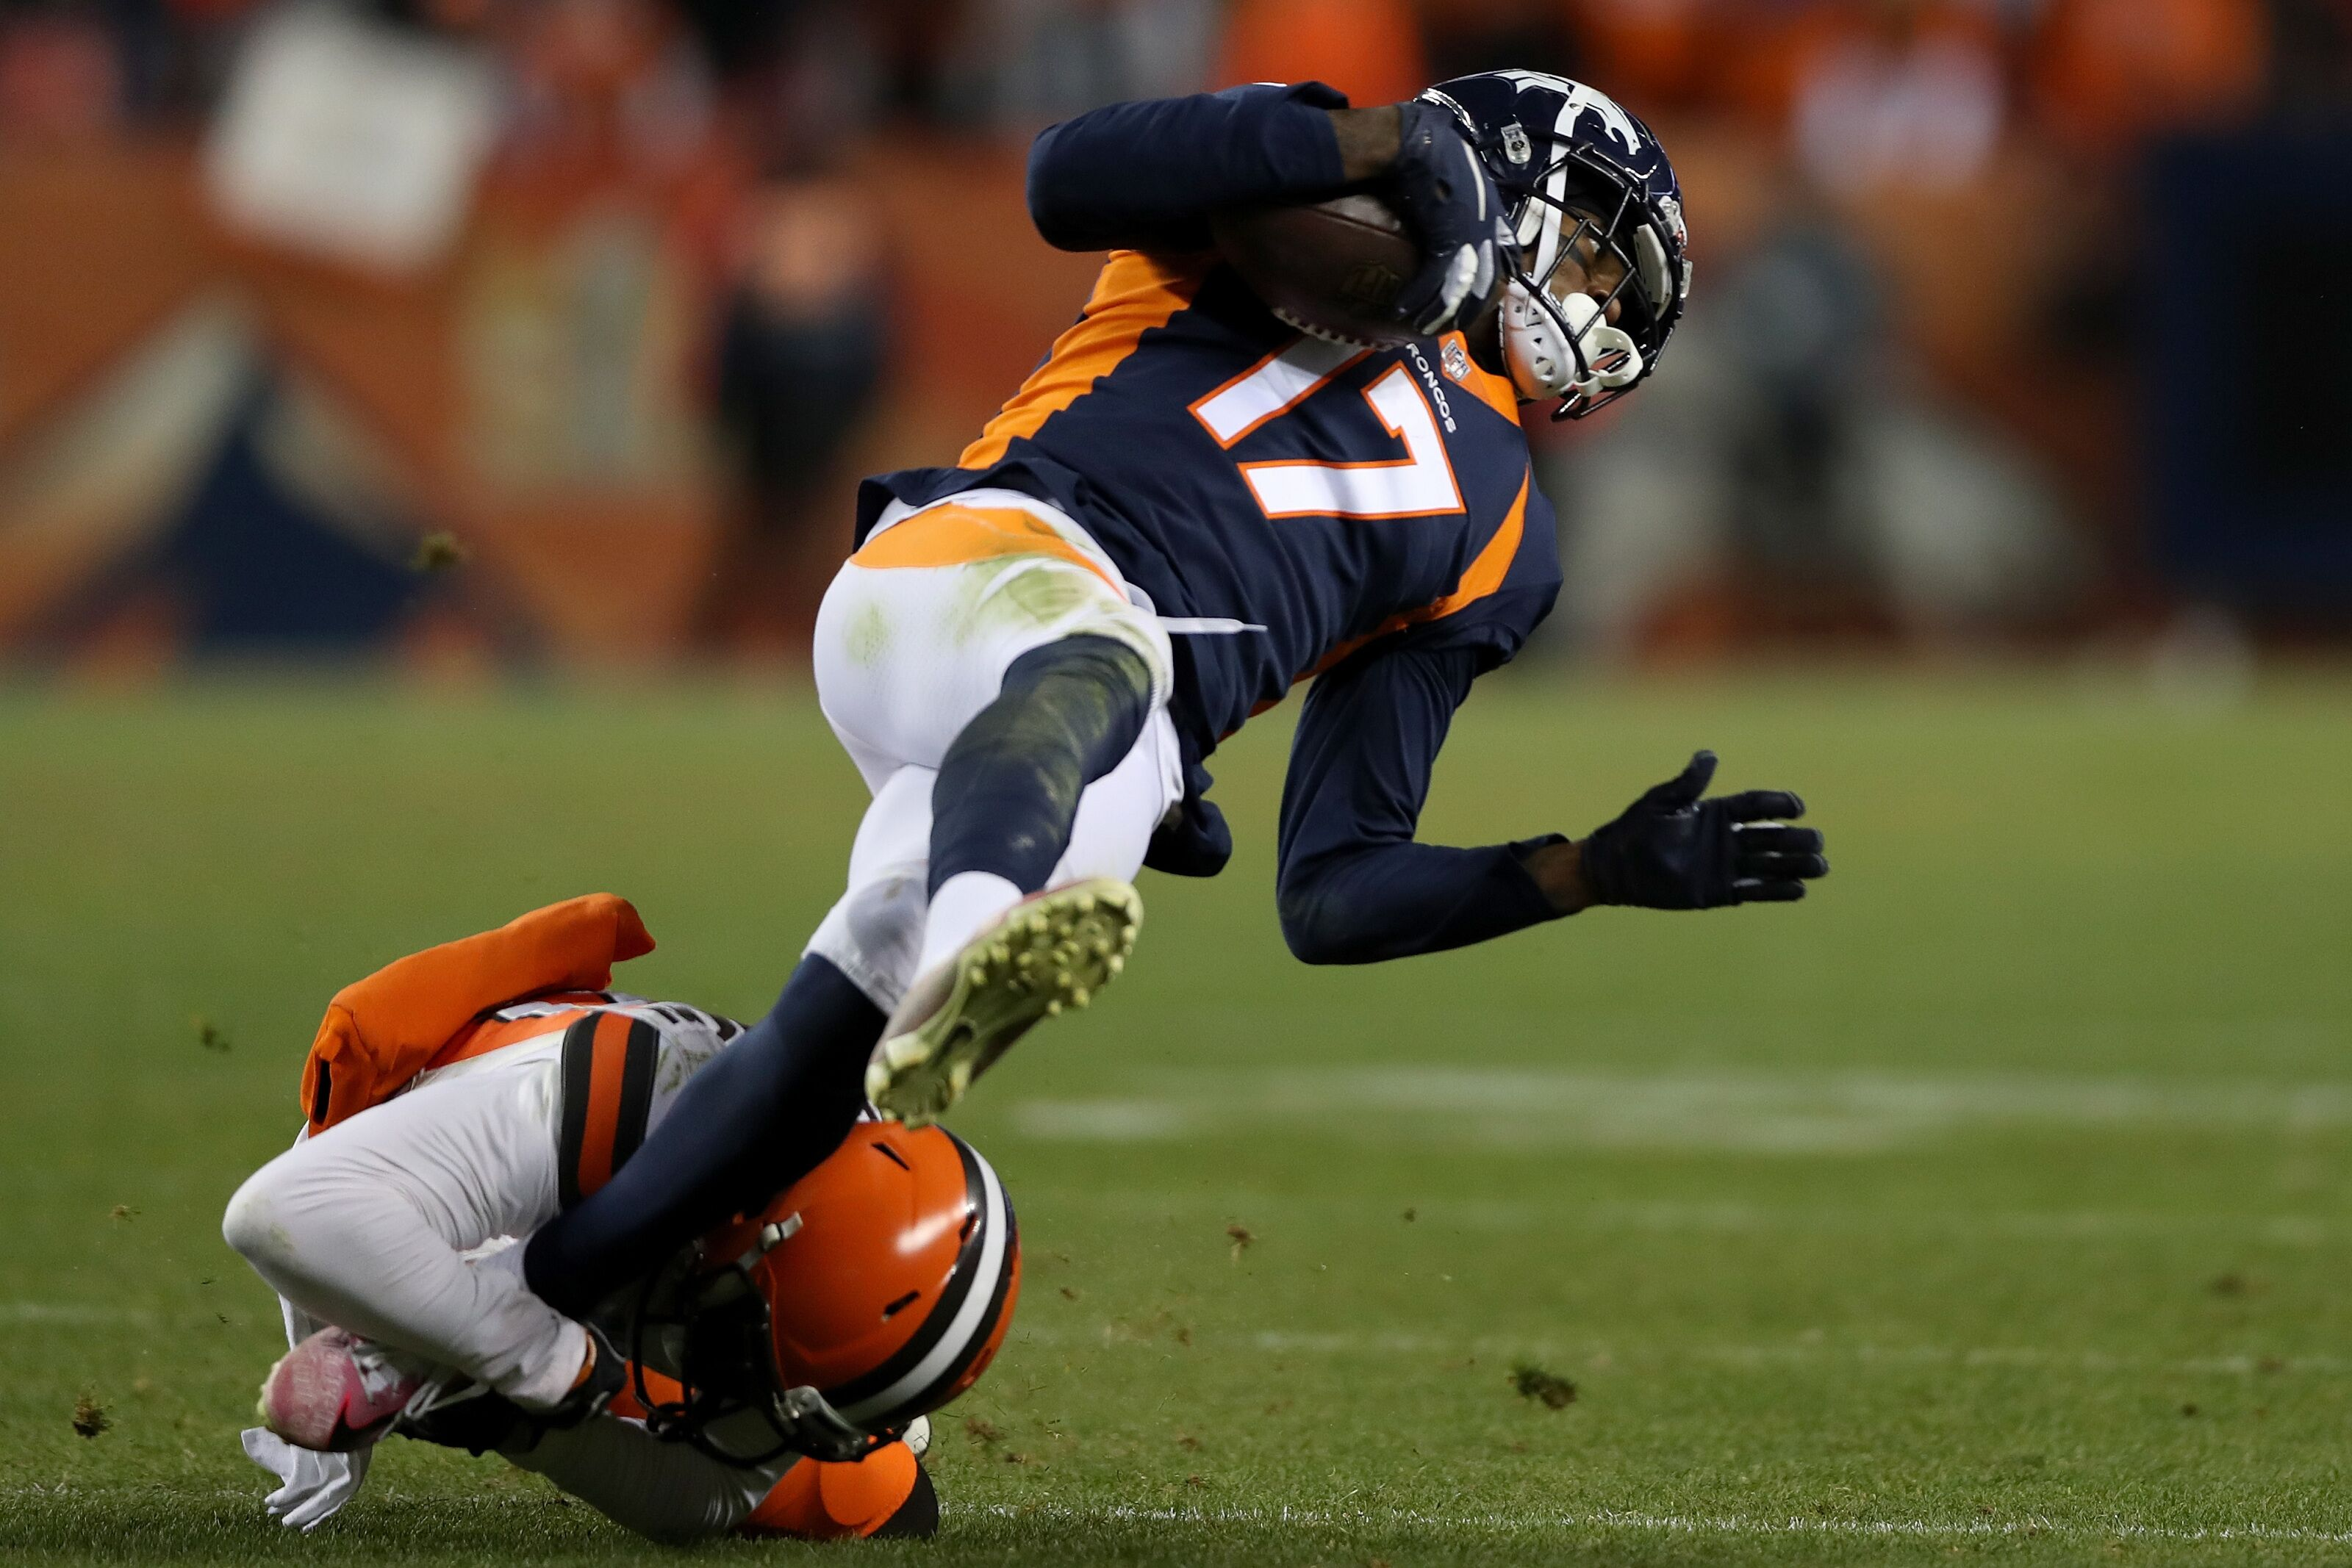 DENVER, COLORADO - DECEMBER 15: Briean Boddy-Calhoun #20 of the Cleveland Browns tackles DaeSean Hamilton #17 of the Denver Broncos at Broncos Stadium at Mile High on December 15, 2018 in Denver, Colorado. (Photo by Matthew Stockman/Getty Images)